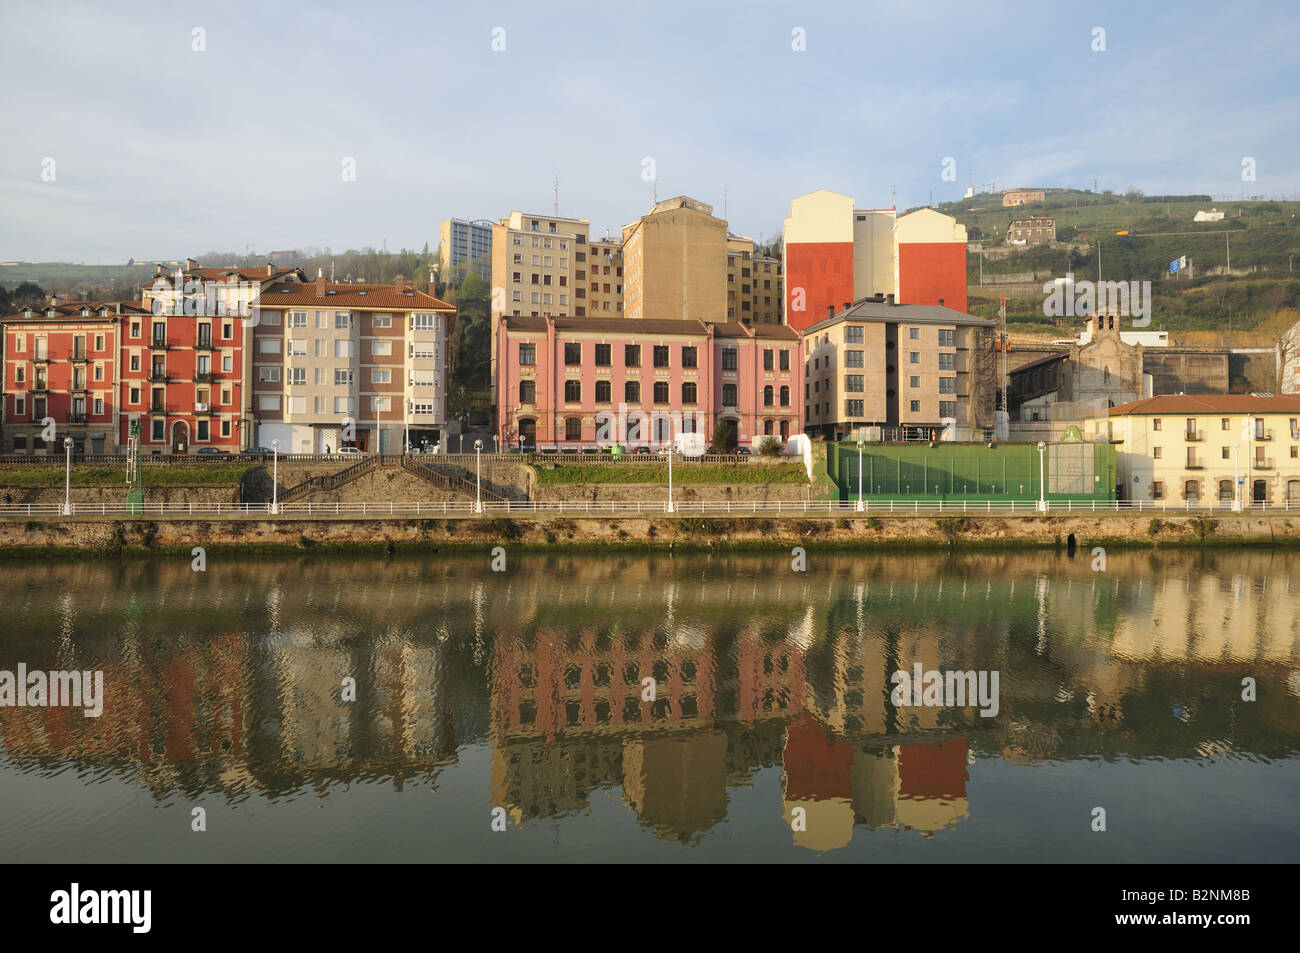 High rise flats apartments houses buildings seen across the Ria de Bilbao or Nervion River Spain - Stock Image